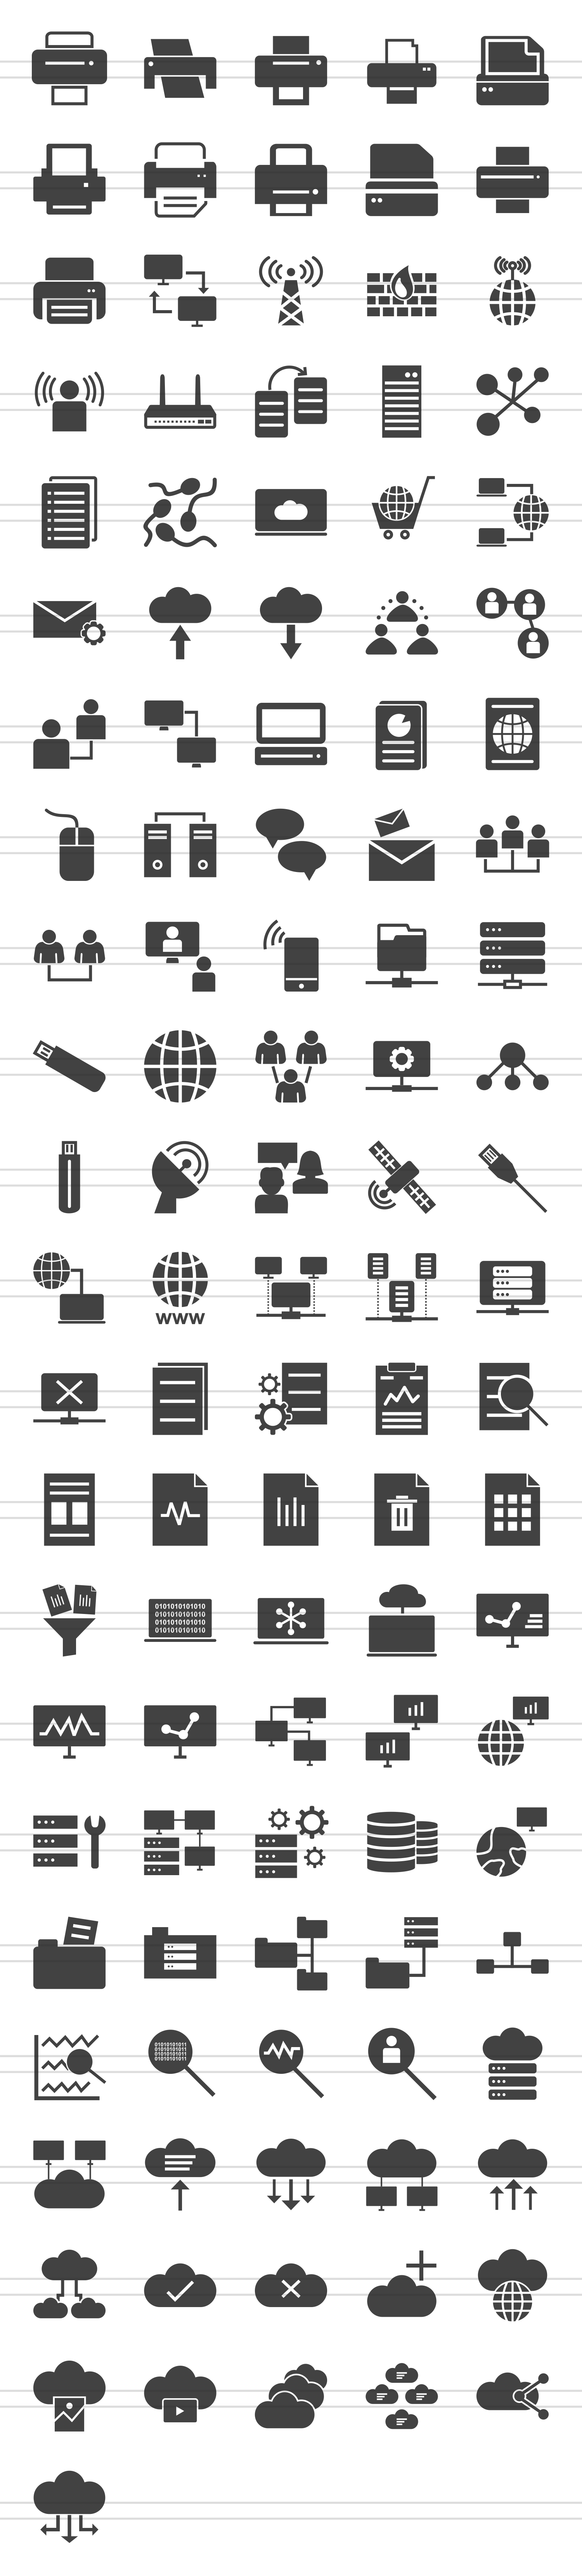 111 Networking & Printers Glyph Icons example image 2